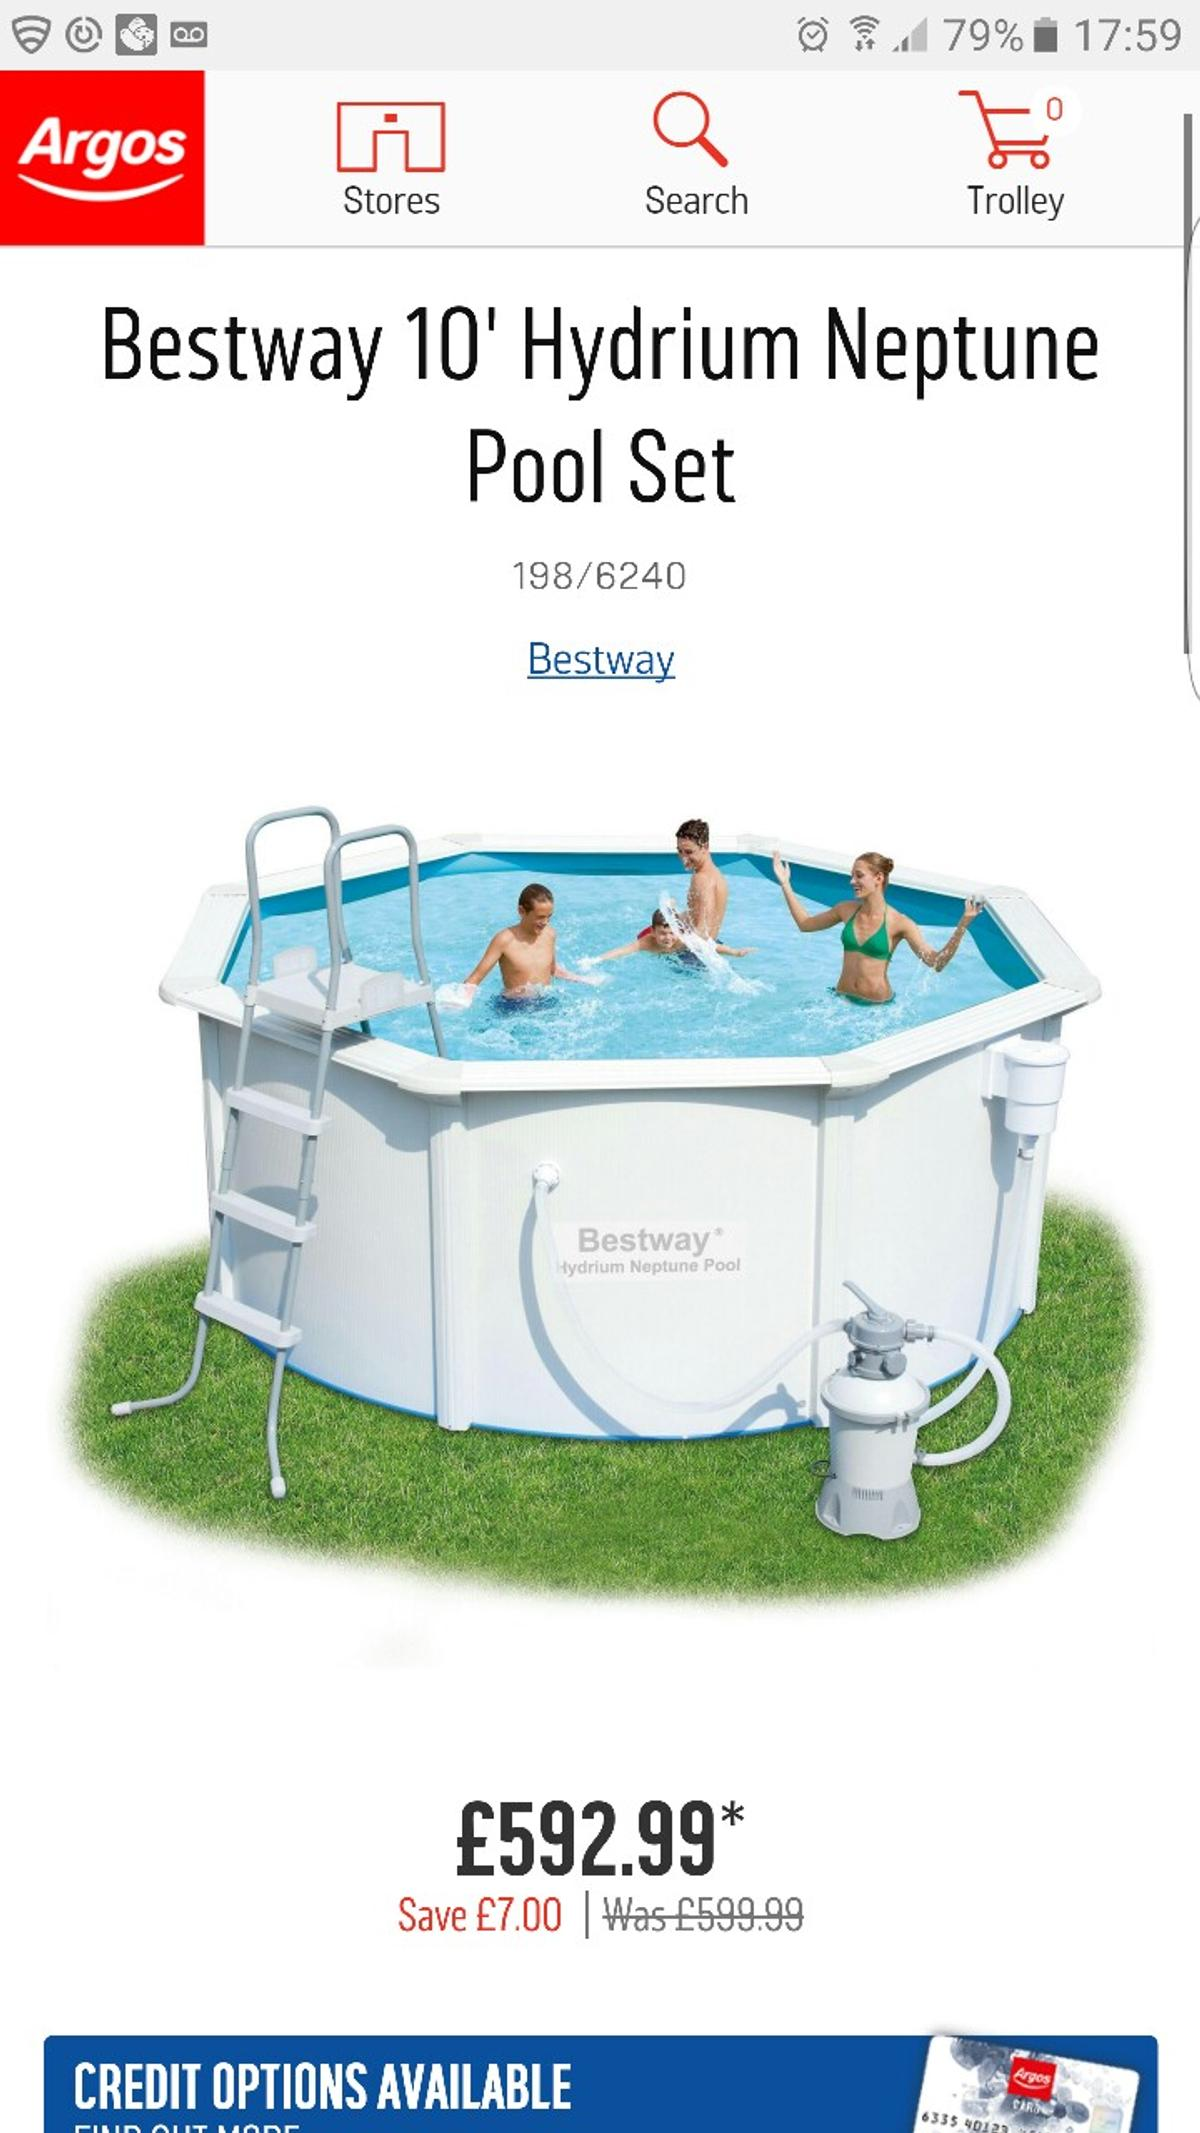 Jacuzzi Pool Argos Bestway Hydrium Neptune Swimming Pool In Rg30 Reading For 350 00